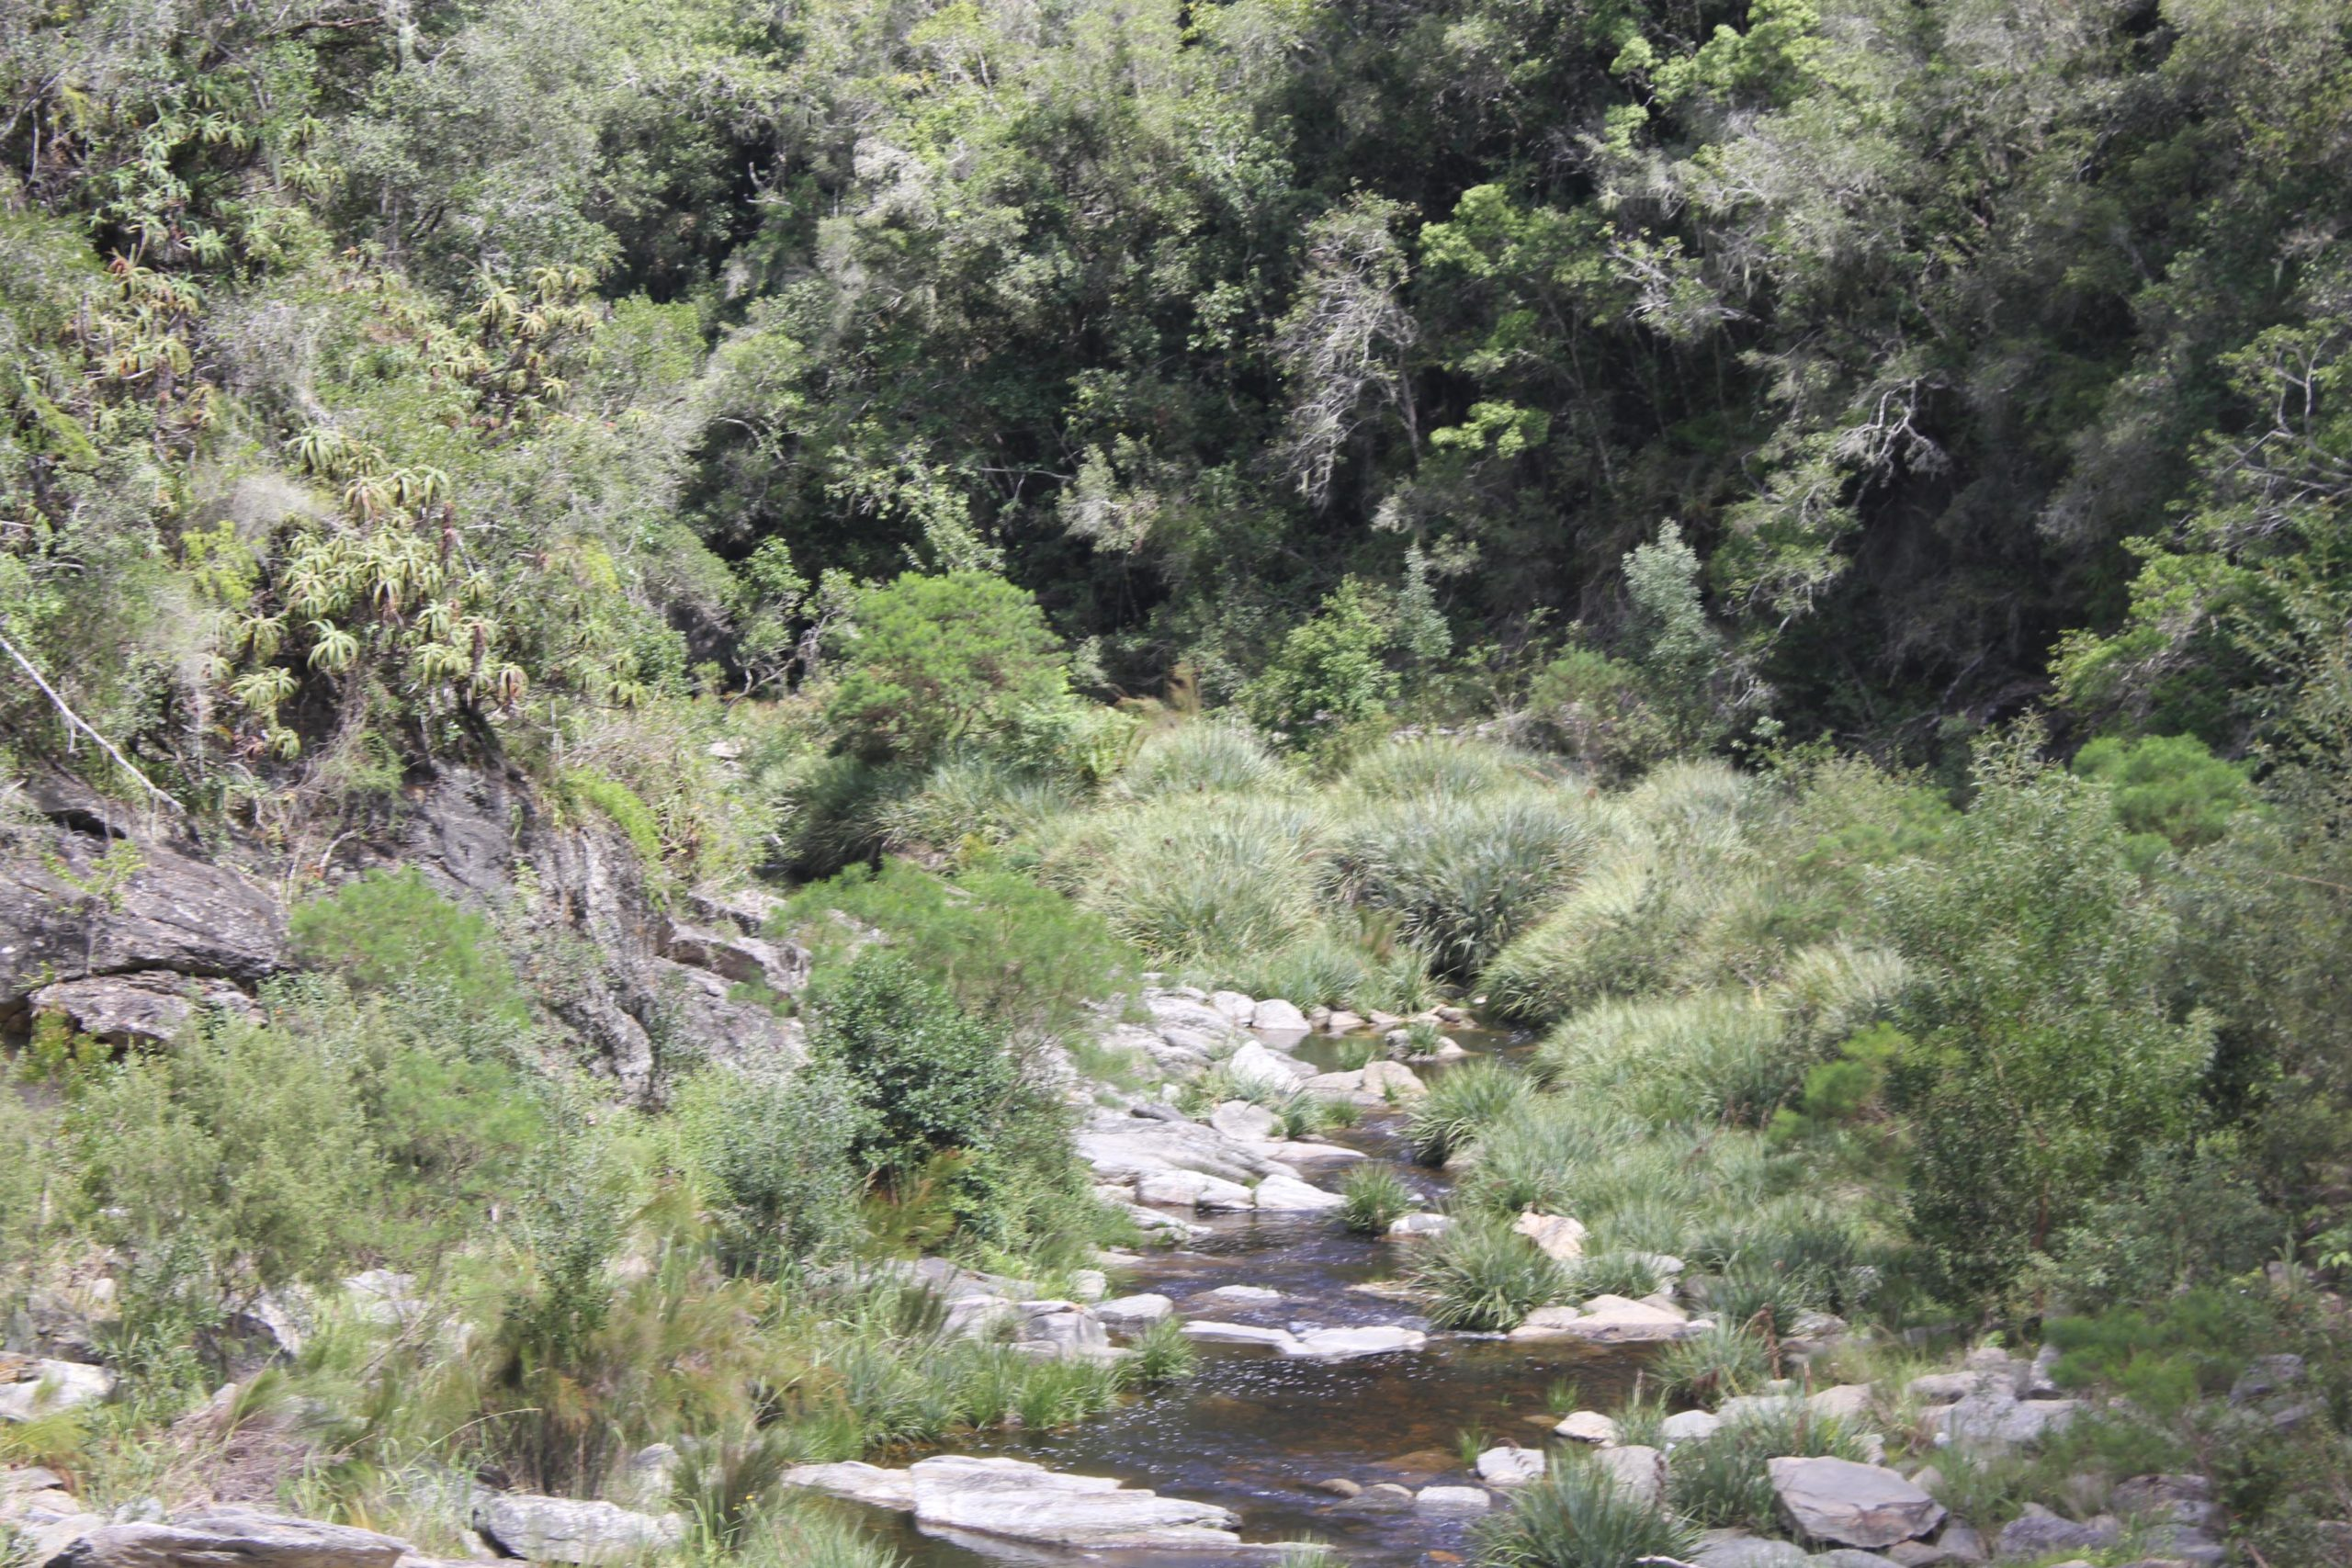 Southern Cape community to reflect on environmental management during December 2020 event